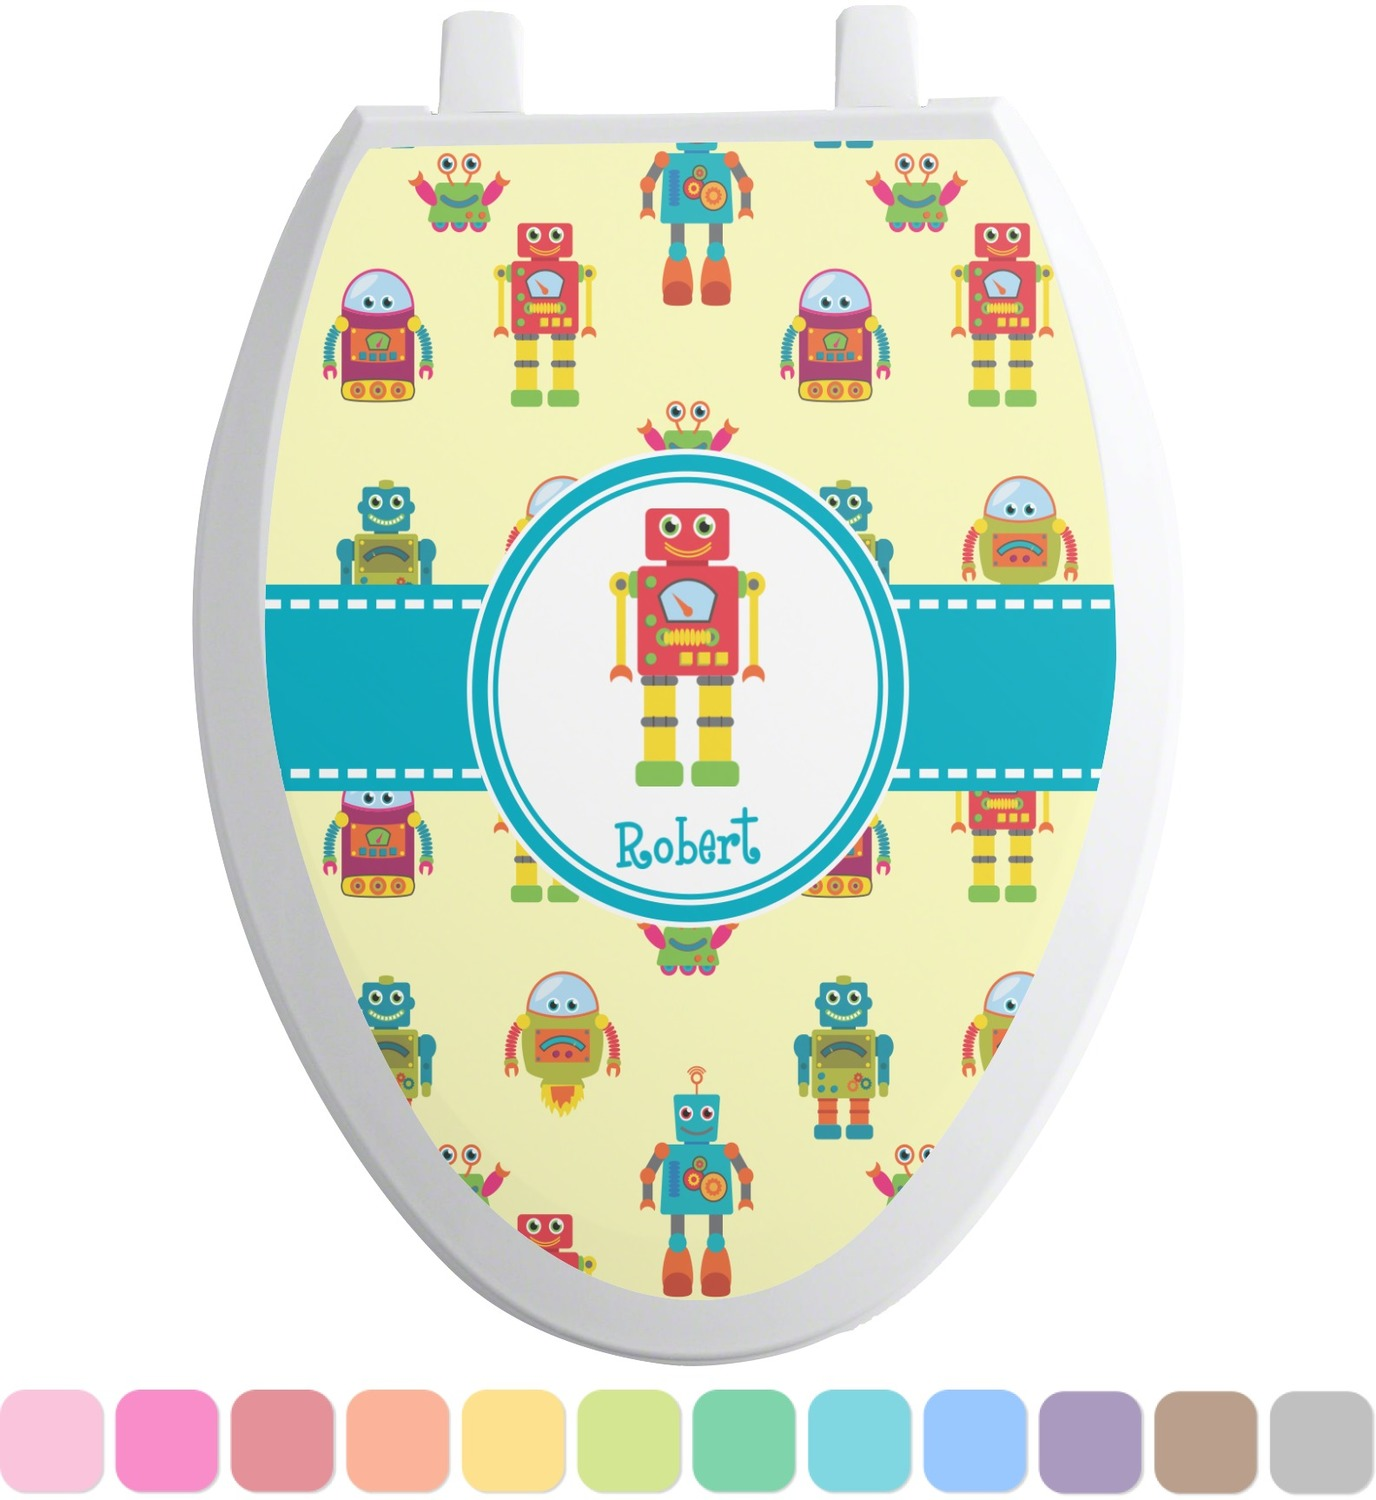 Robot toilet seat decal elongated personalized you customize it - Elongated toilet seat covers in some stunning patterns ...